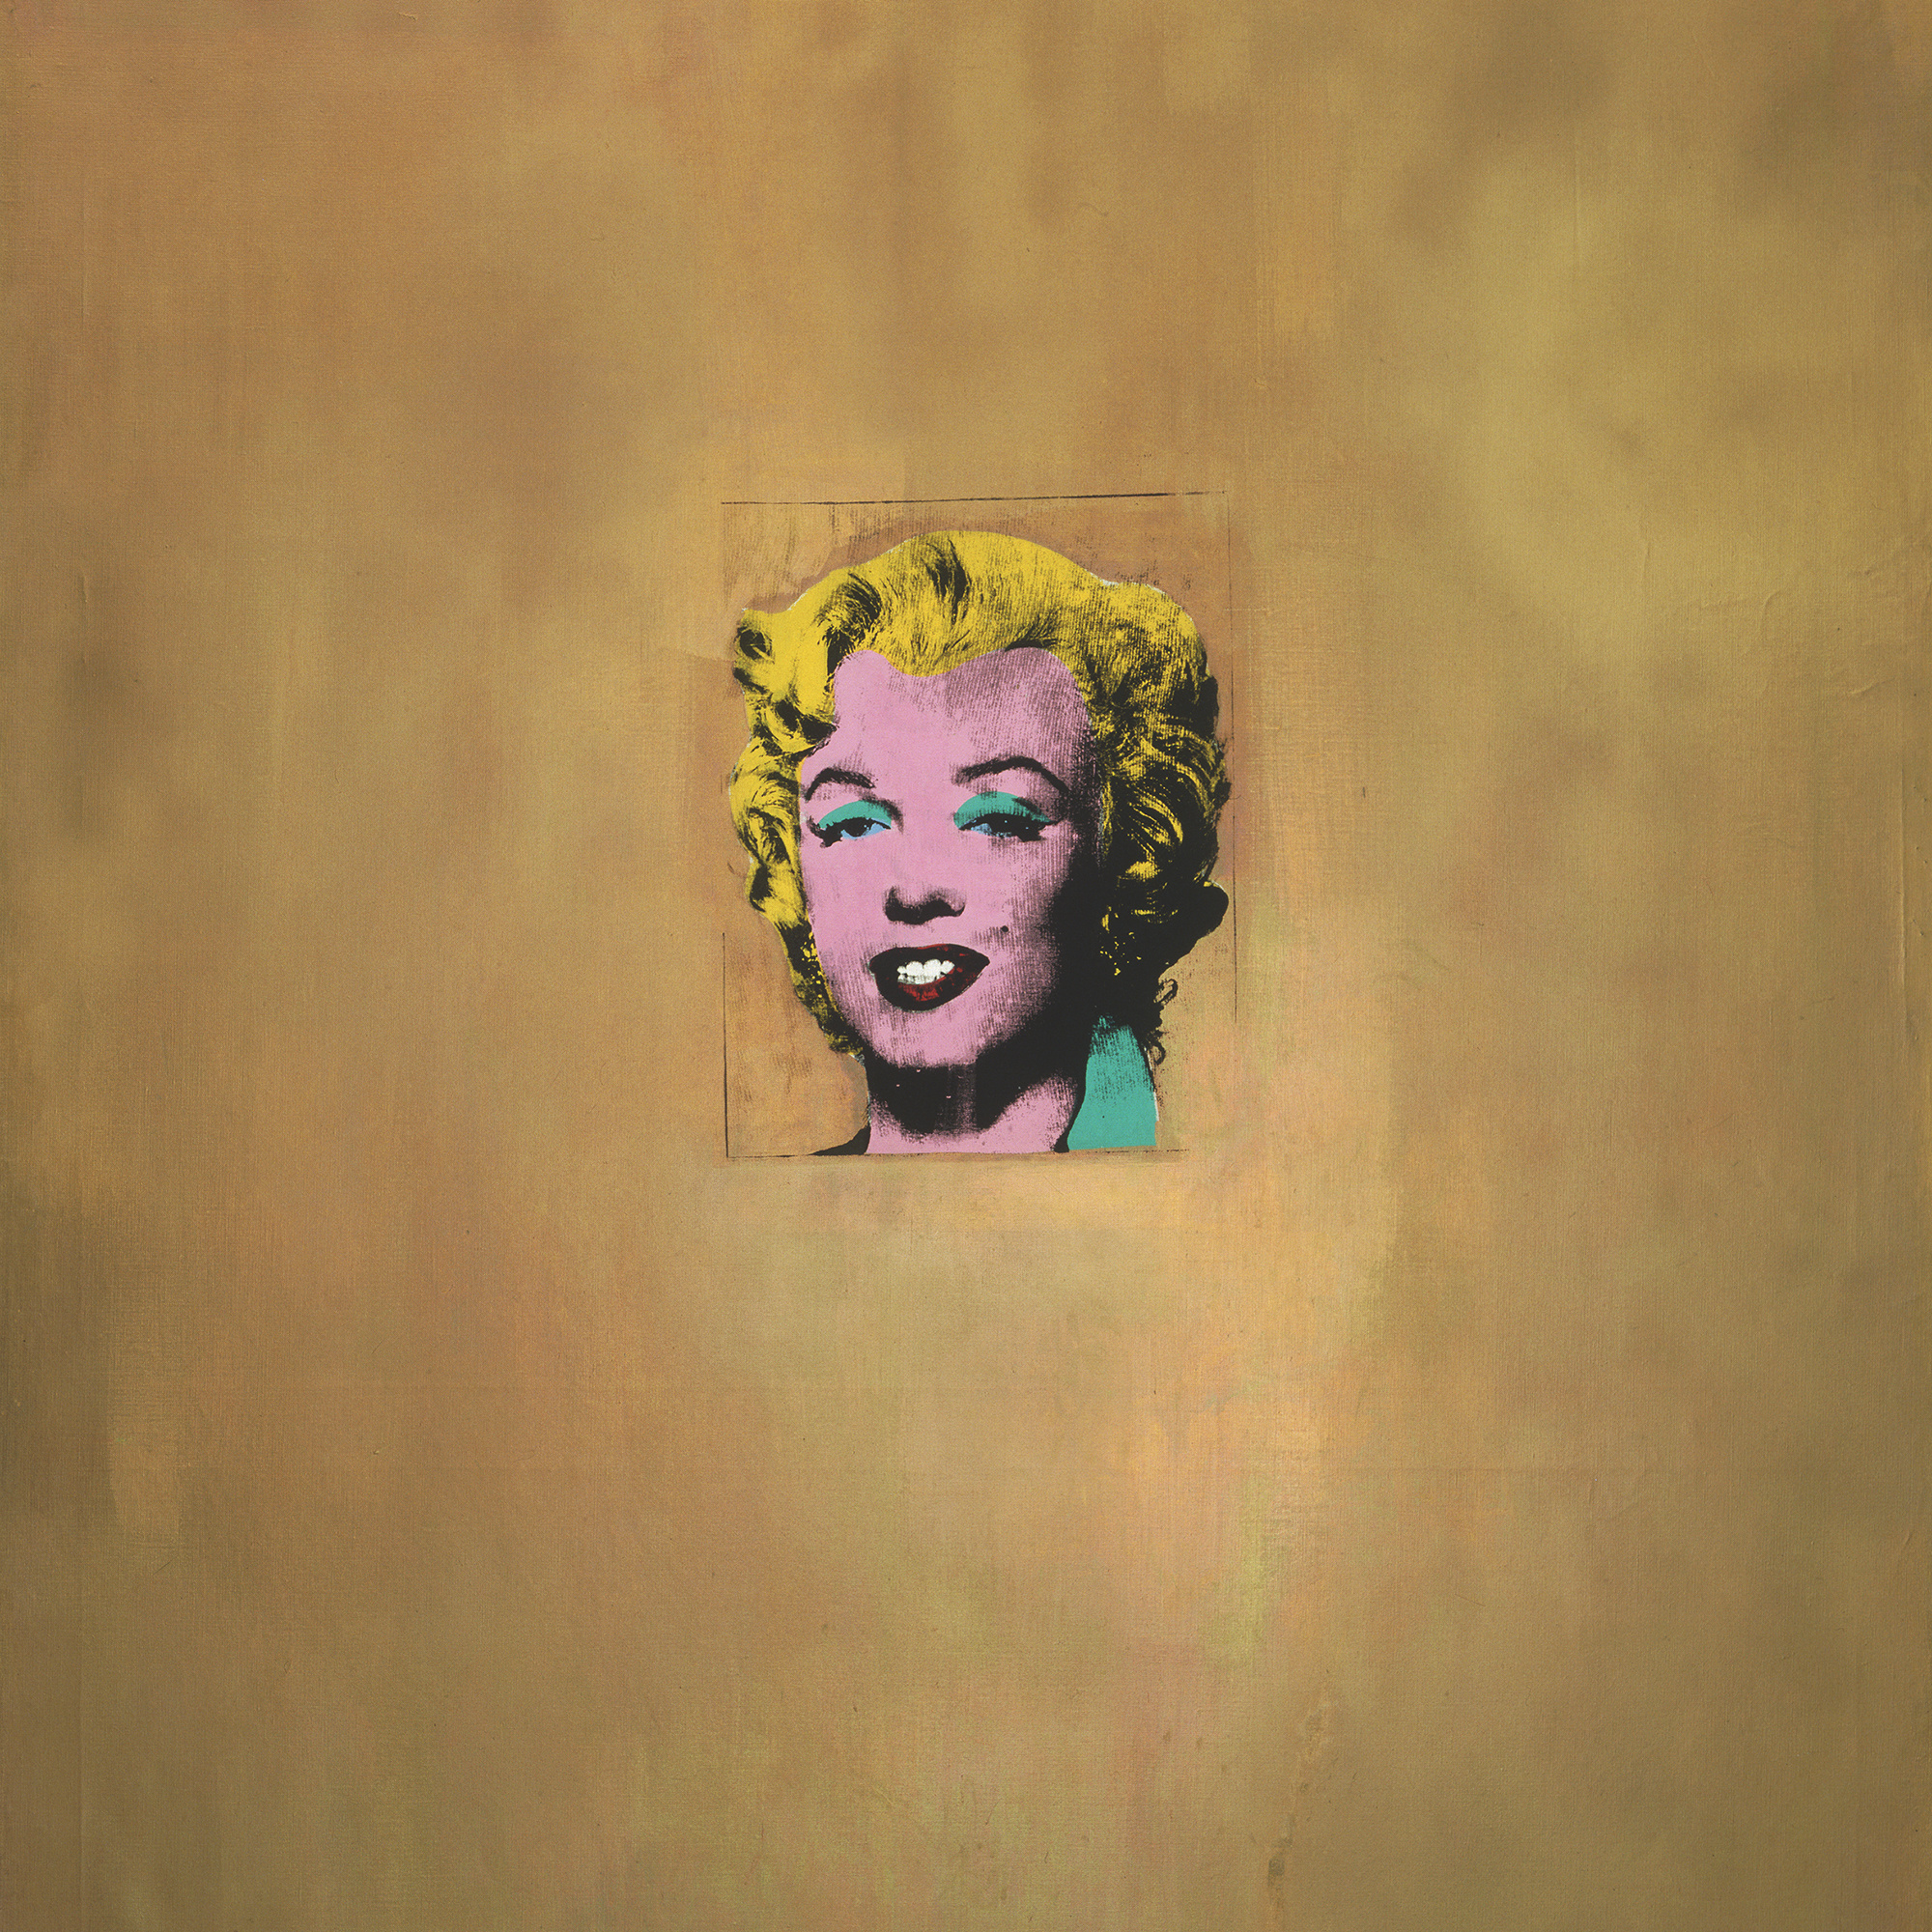 history of the gold marilyn monroe painting history essay Pop art included different styles of painting and sculpture but all had a common interest in  warhol's paintings of marilyn monroe are the most famous icons of.